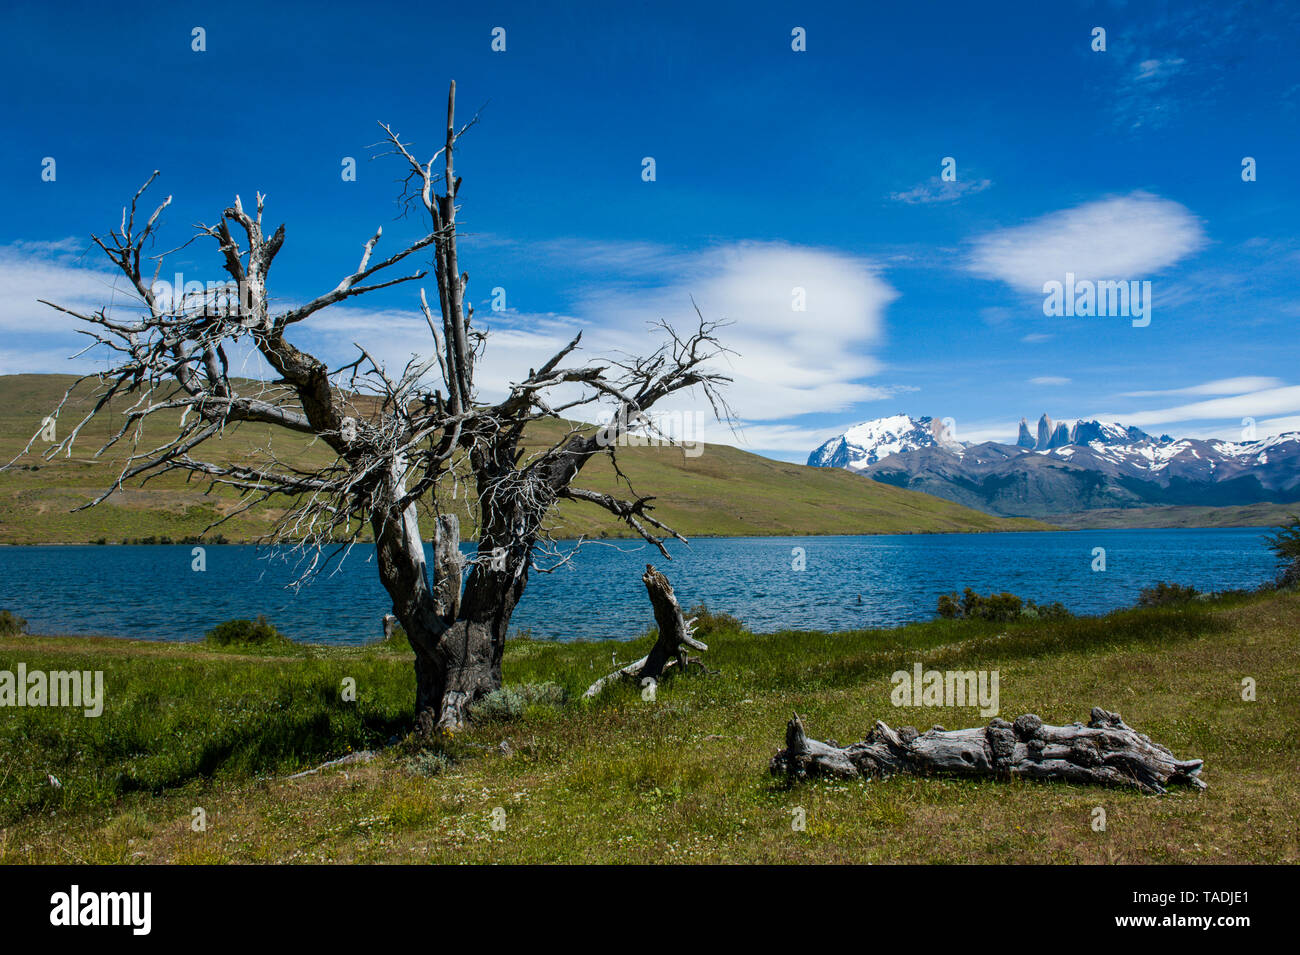 Chile, Patagonia, Torres del Paine National Park, glacier lake with mountains in background - Stock Image